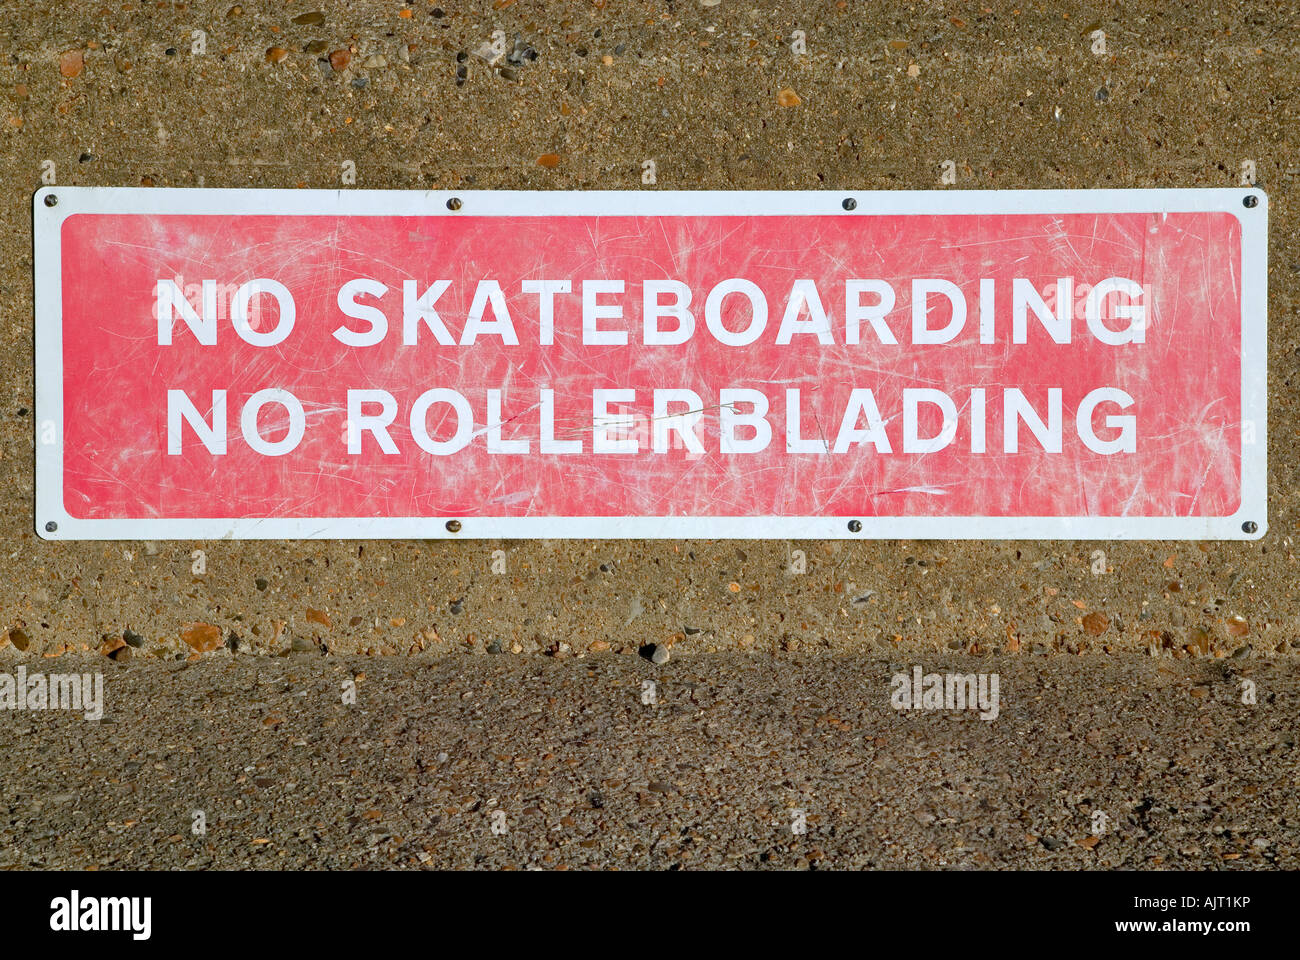 No Skateboarding sign covered in marks from skateboards and rollerblades - Stock Image